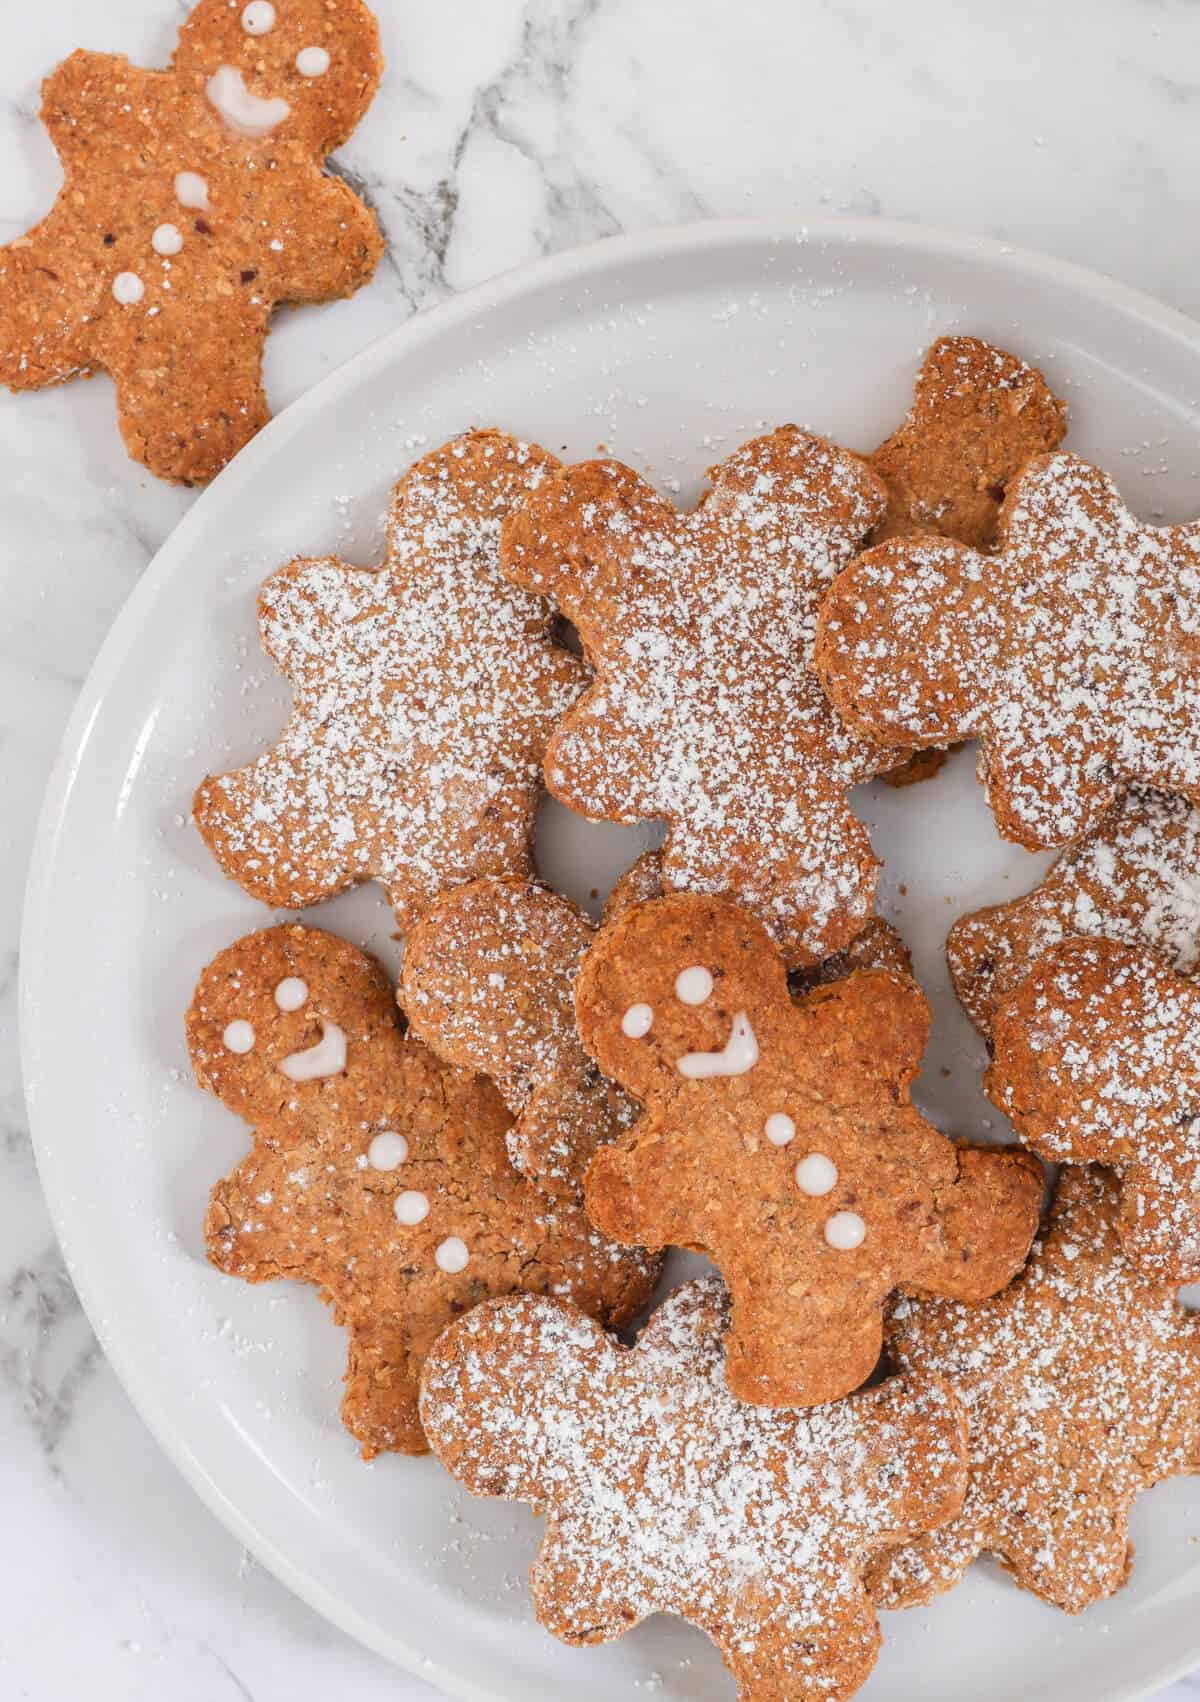 Gingerbread Biscuits served on a plate